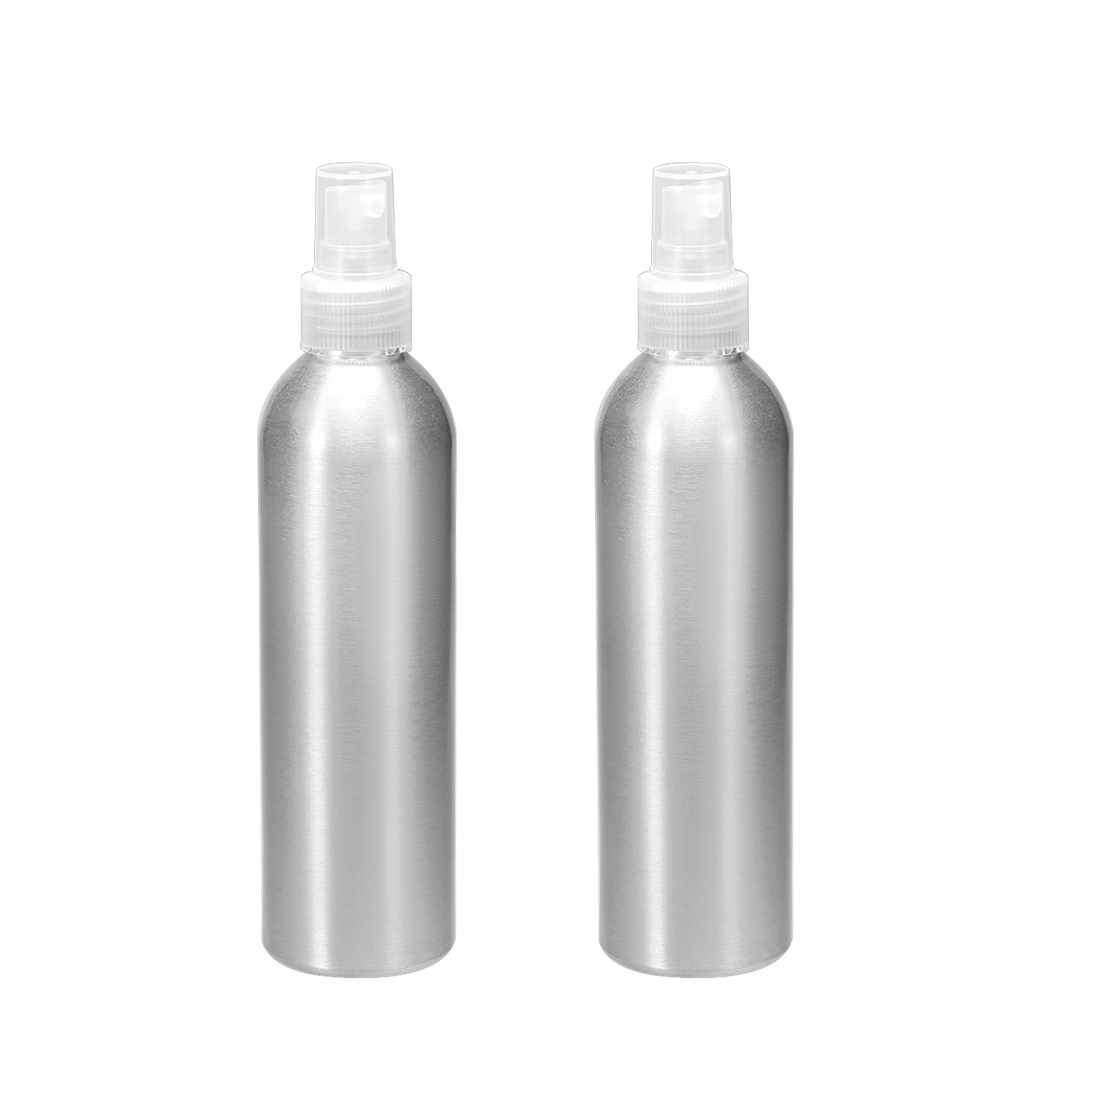 2pcs 8.5oz/250ml Aluminium Spray Bottle with Clear Sprayer, Refillable Container